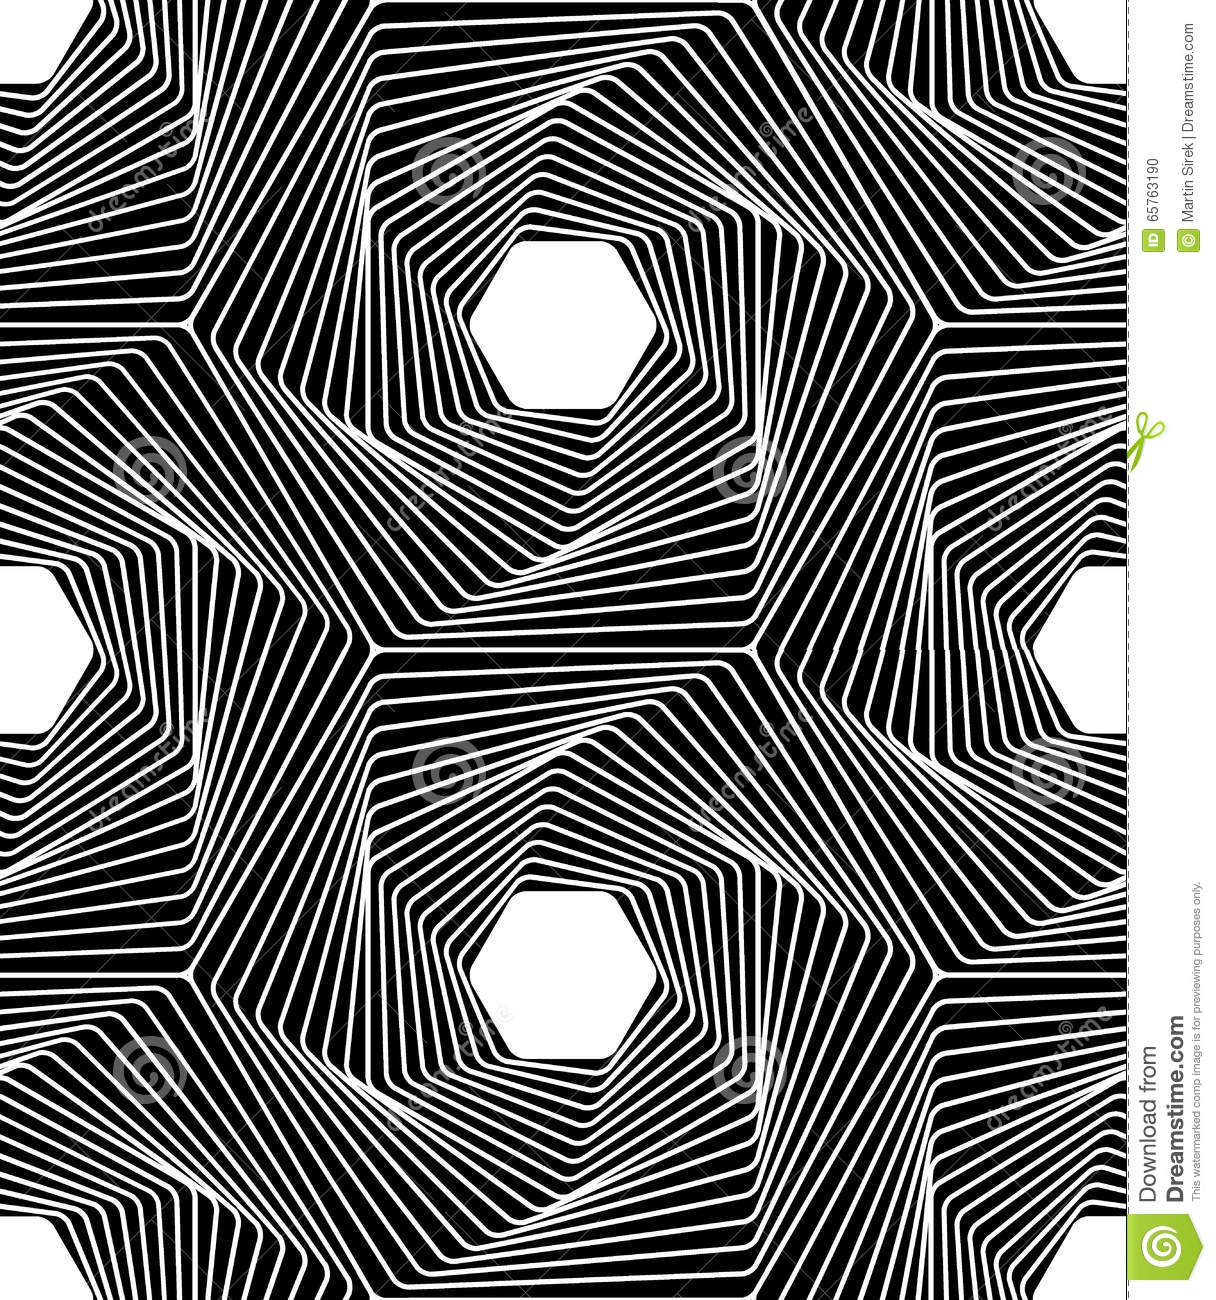 Vector modern seamless geometry pattern line art black and white abstract